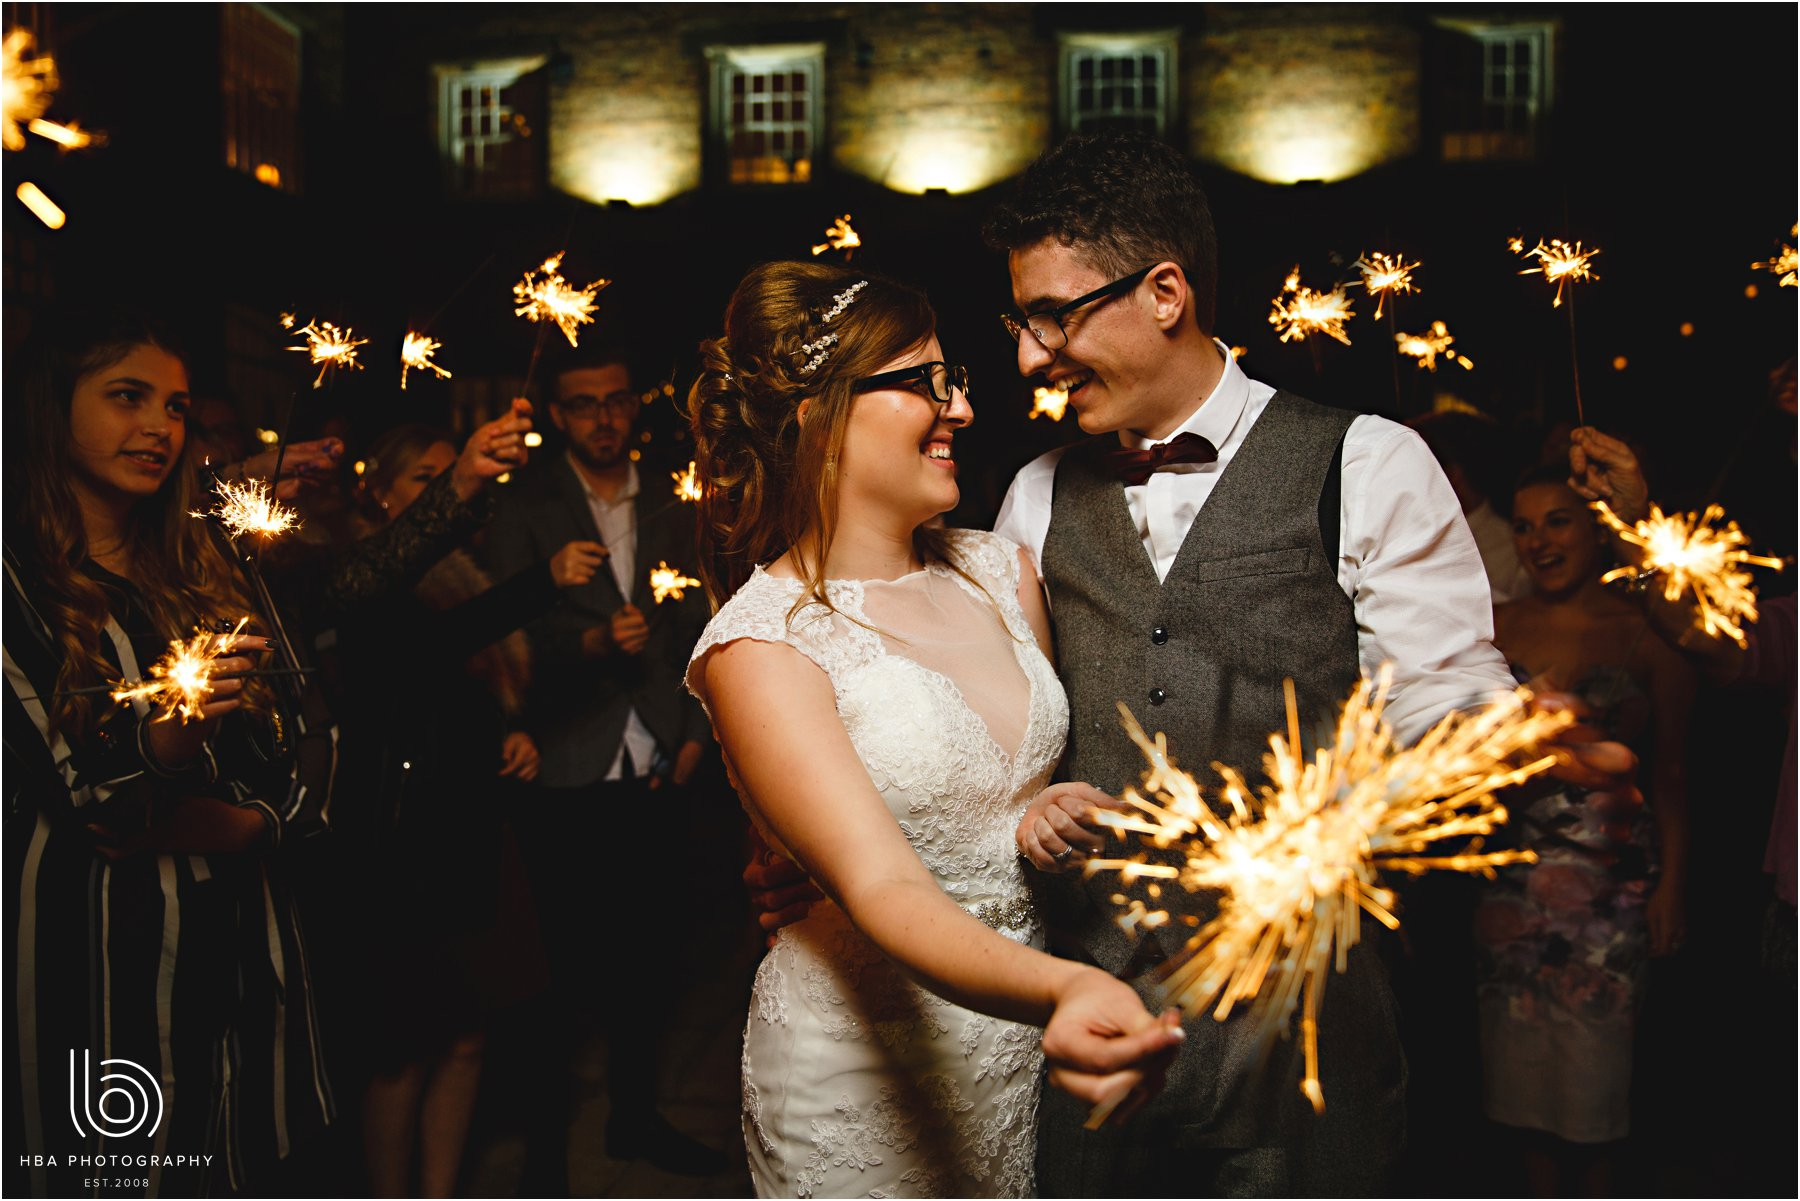 the bride and groom with sparklers